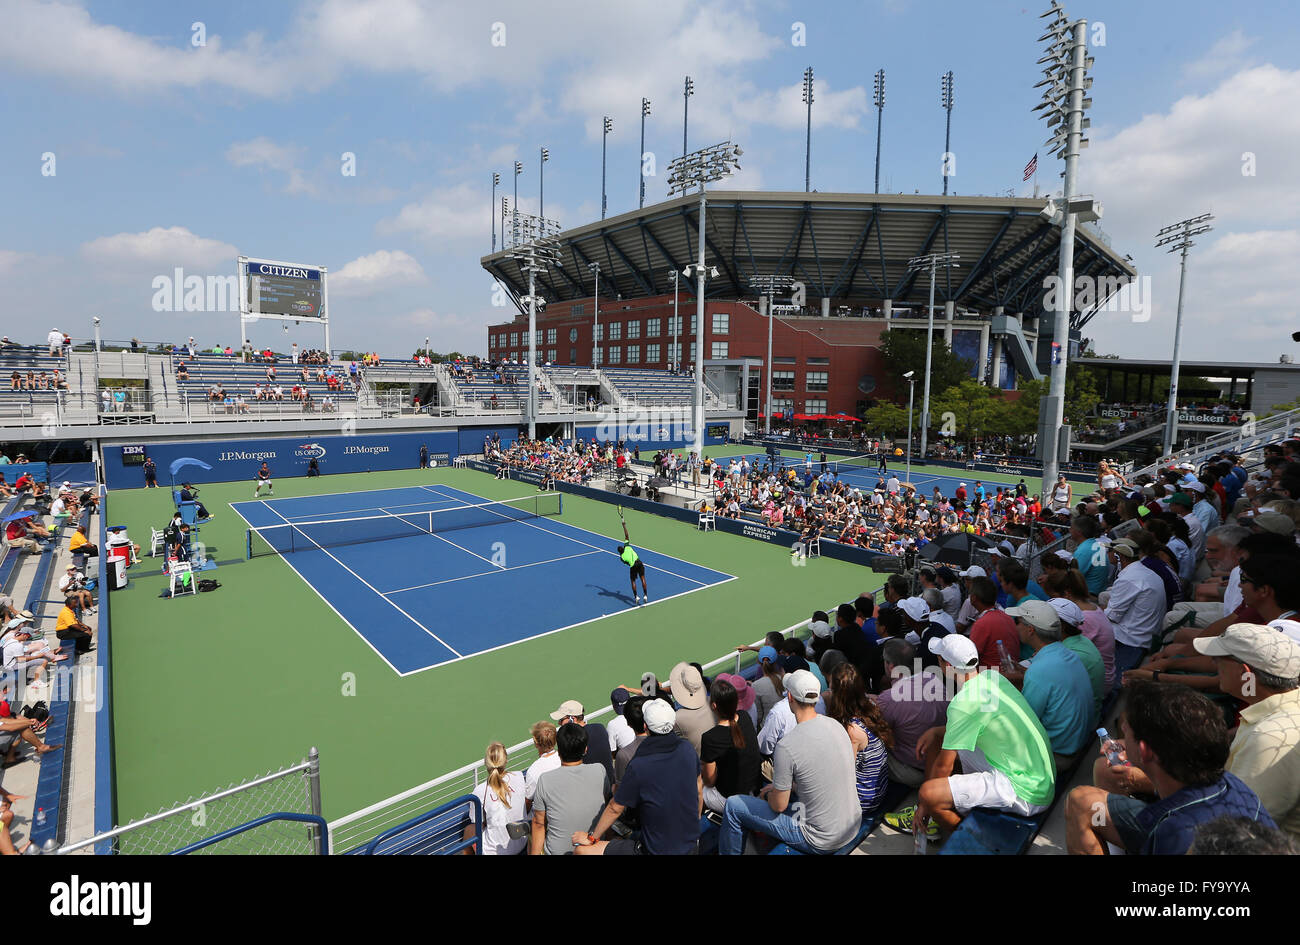 Outdoor courts and the Arthur Ashe Stadium, US Open in 2014, ITF Grand Slam Tennis Tournament, USTA Billie Jean - Stock Image